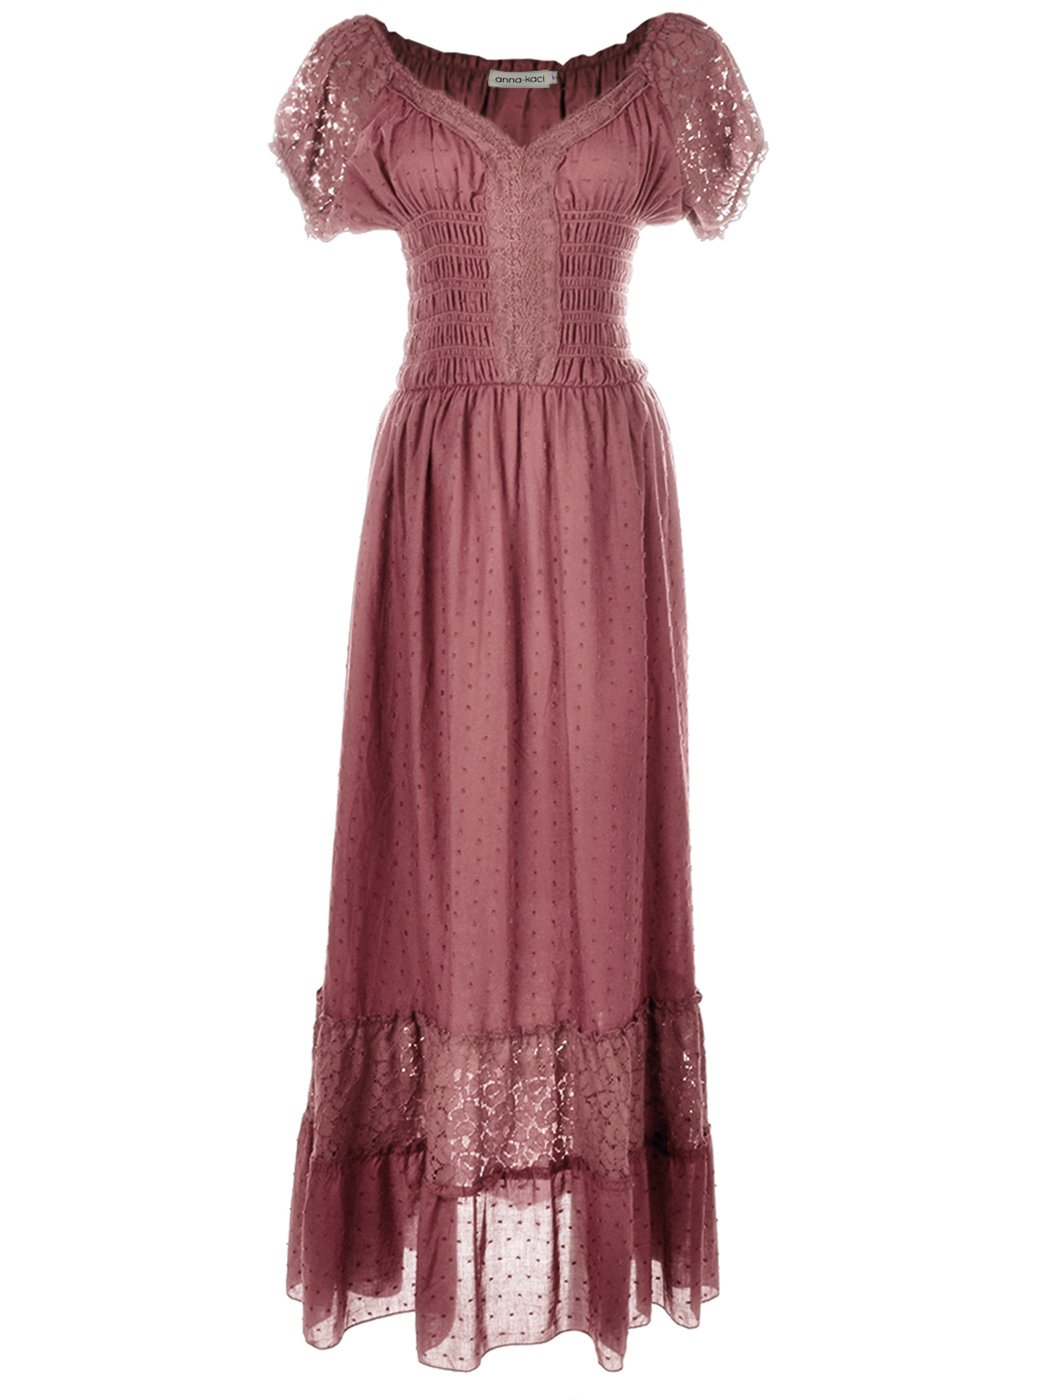 Renaissance Maiden Inspired Pink Lace Cap Sleeve Trim Chemise Underdress - DeluxeAdultCostumes.com